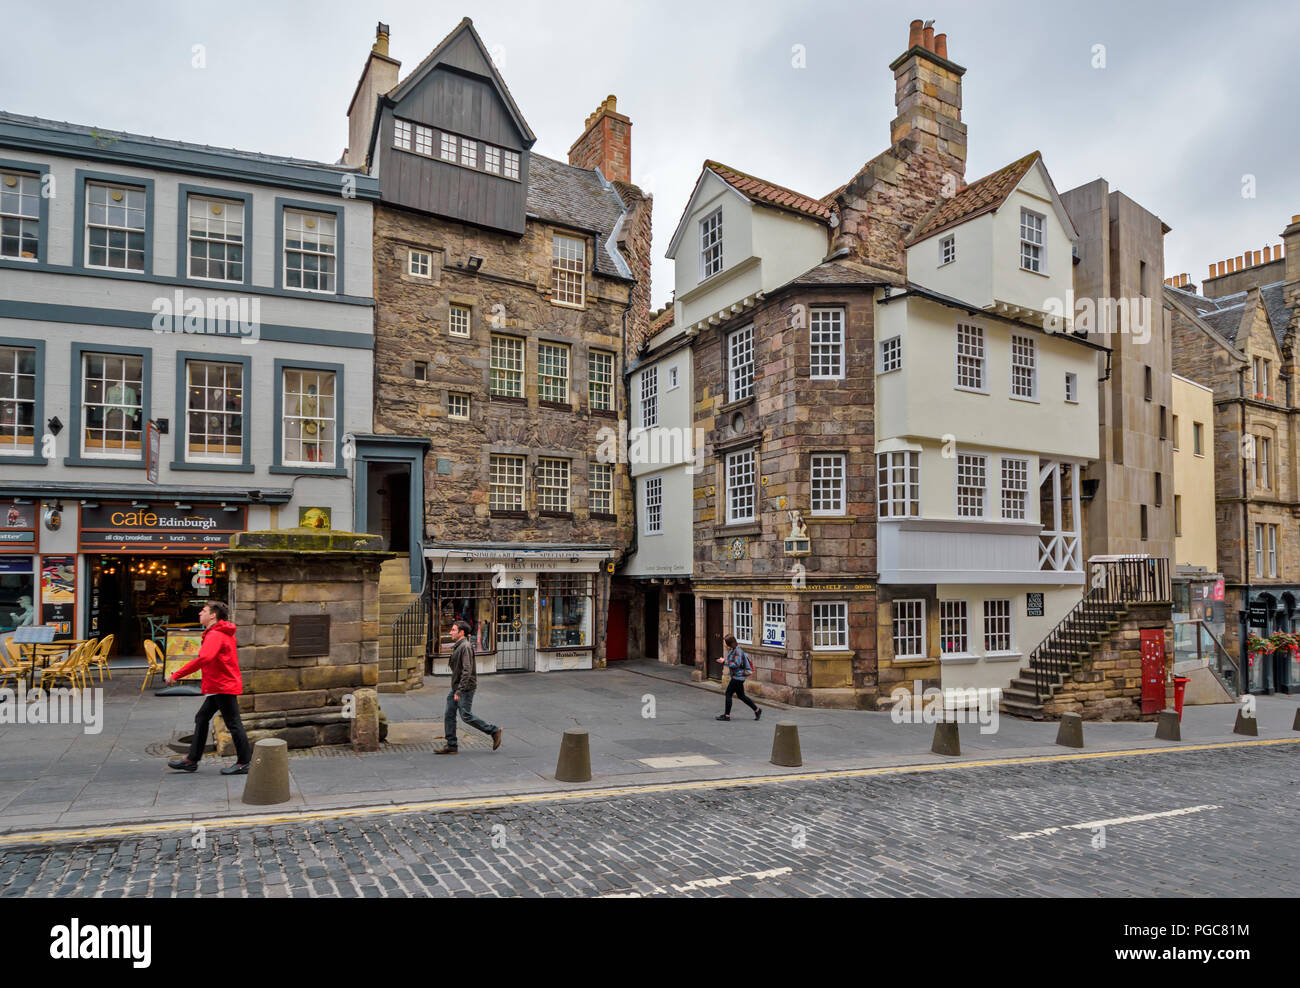 EDINBURGH SCOTLAND JOHN KNOXS HOUSE AND MOUBRAY HOUSE ON HIGH STREET Stock Photo